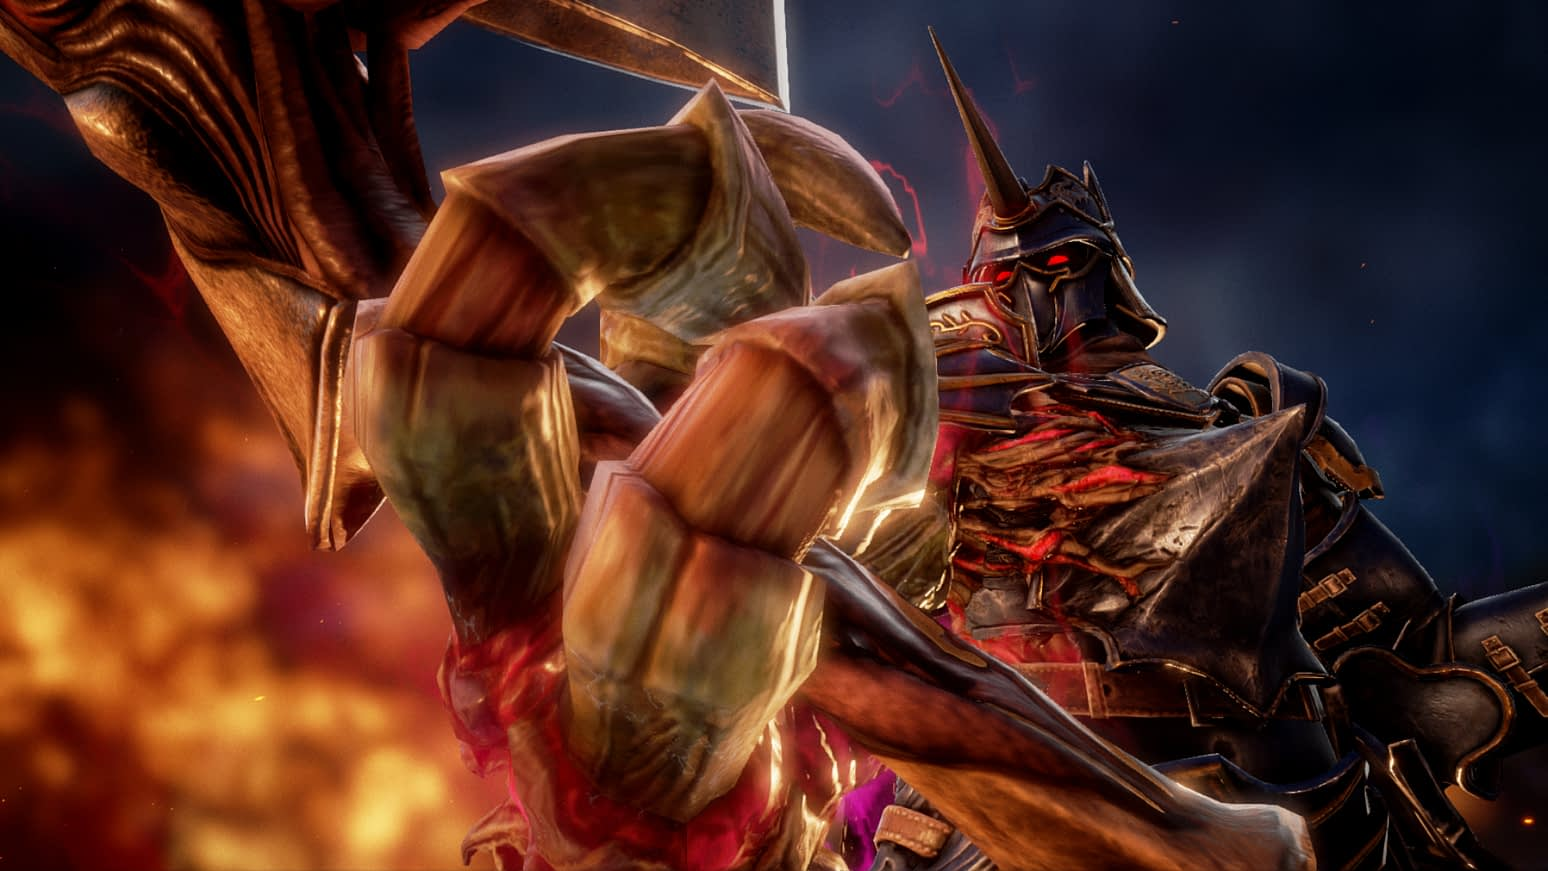 SoulCalibur VI Will Be getting a New Patch for Balances and DLC